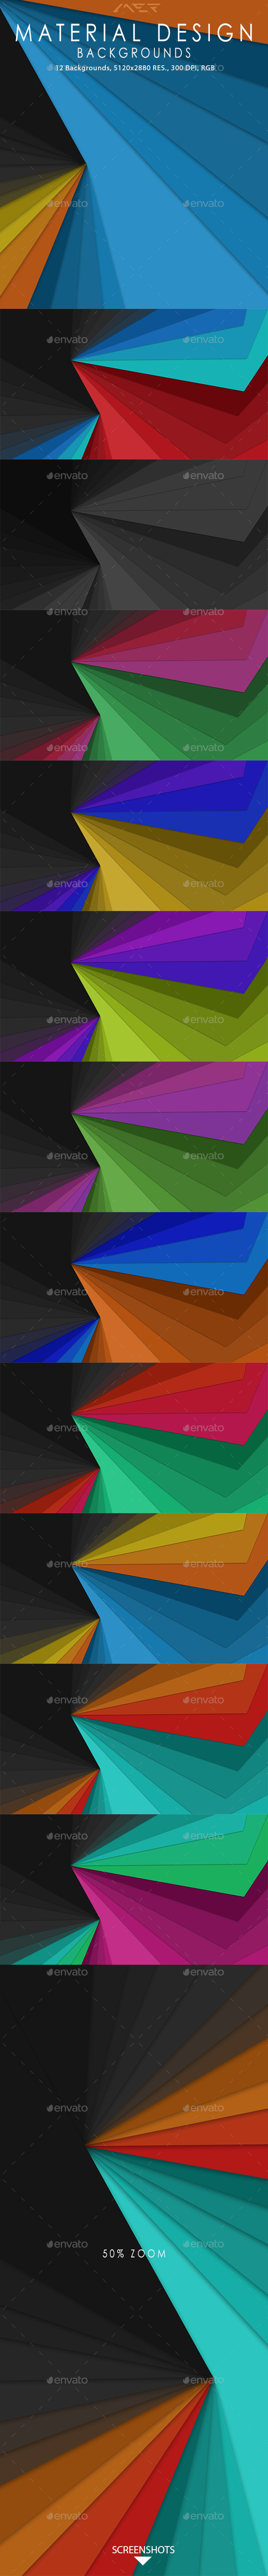 GraphicRiver Material Design Backgrounds 10274170